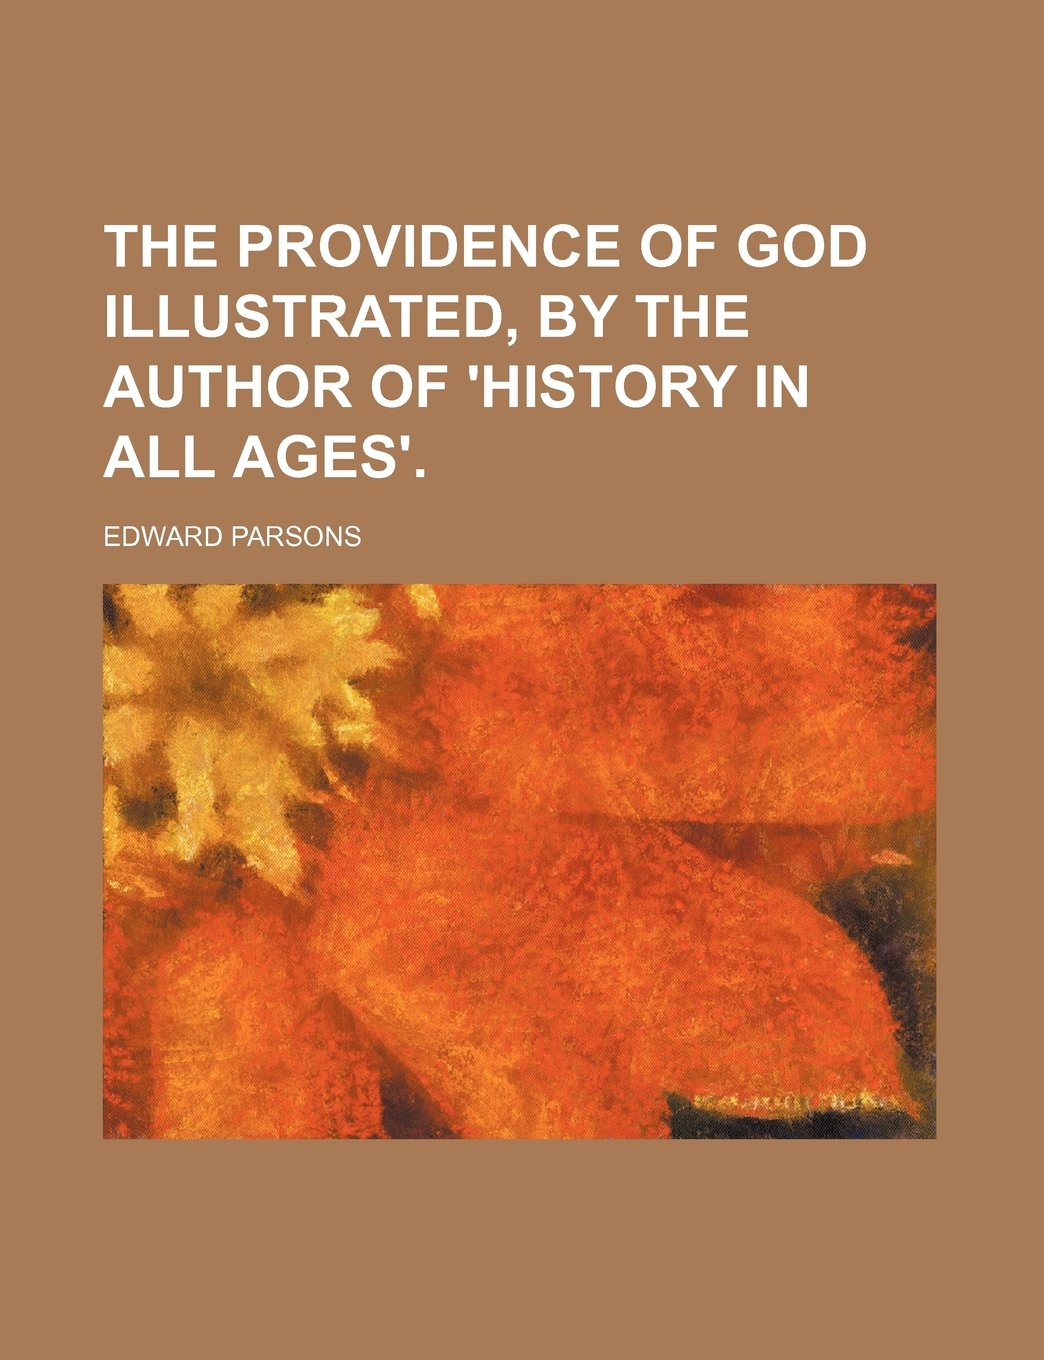 The providence of God illustrated, by the author of 'History in all ages'. ebook